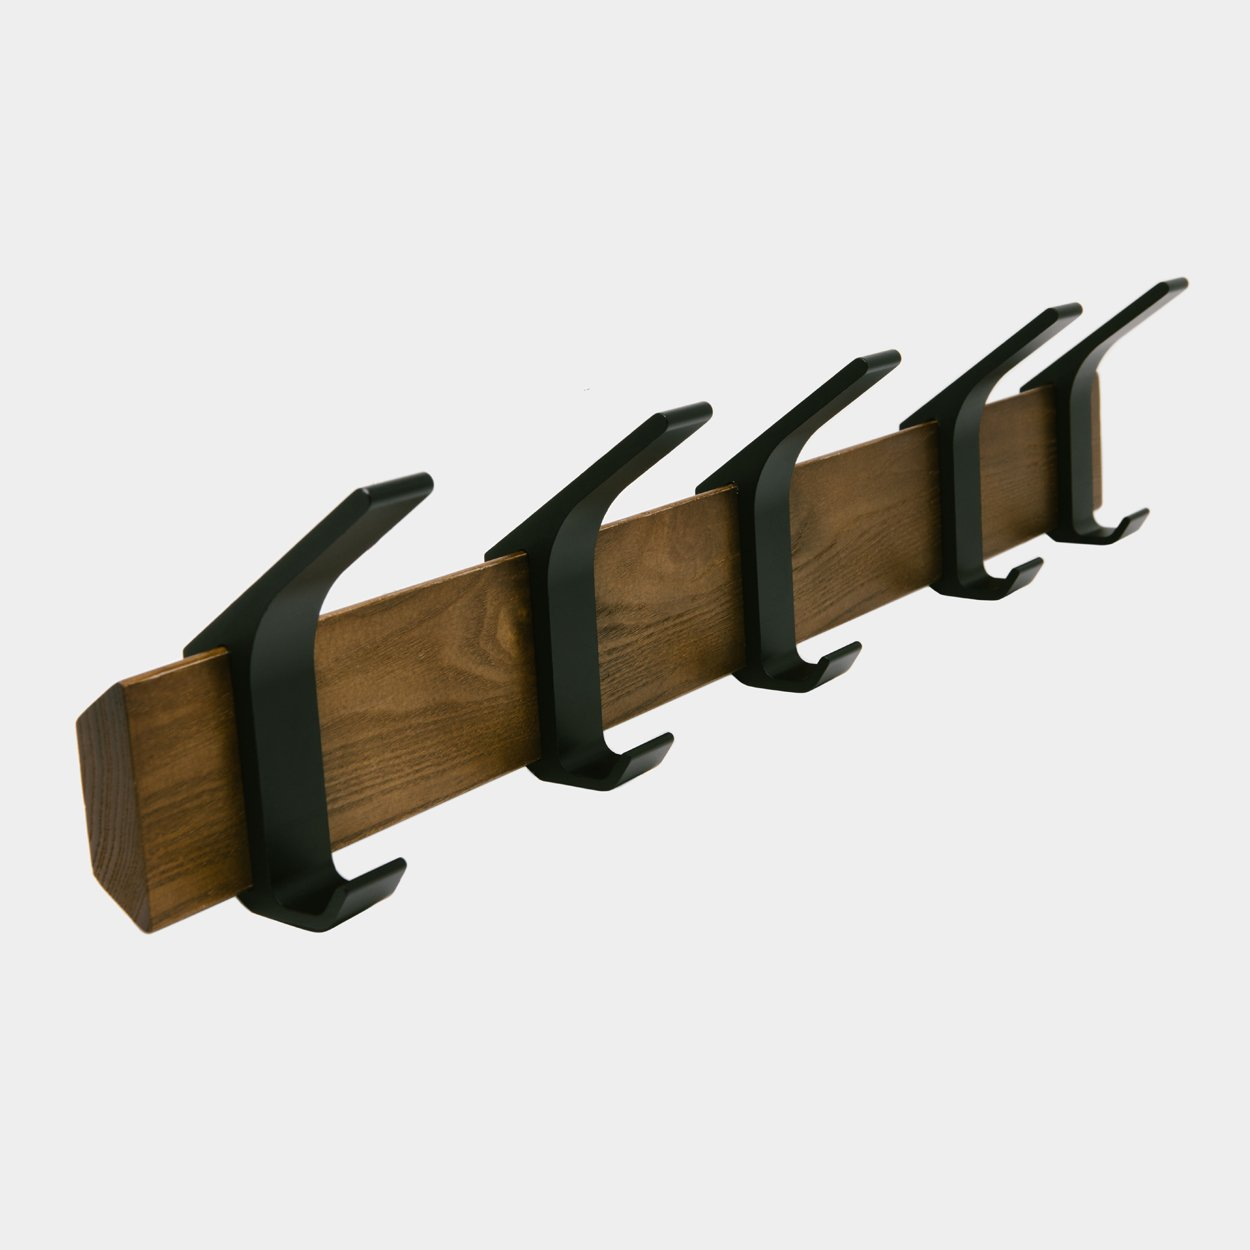 Rin Wall Mounted Coat Hanger Shop Cool Material